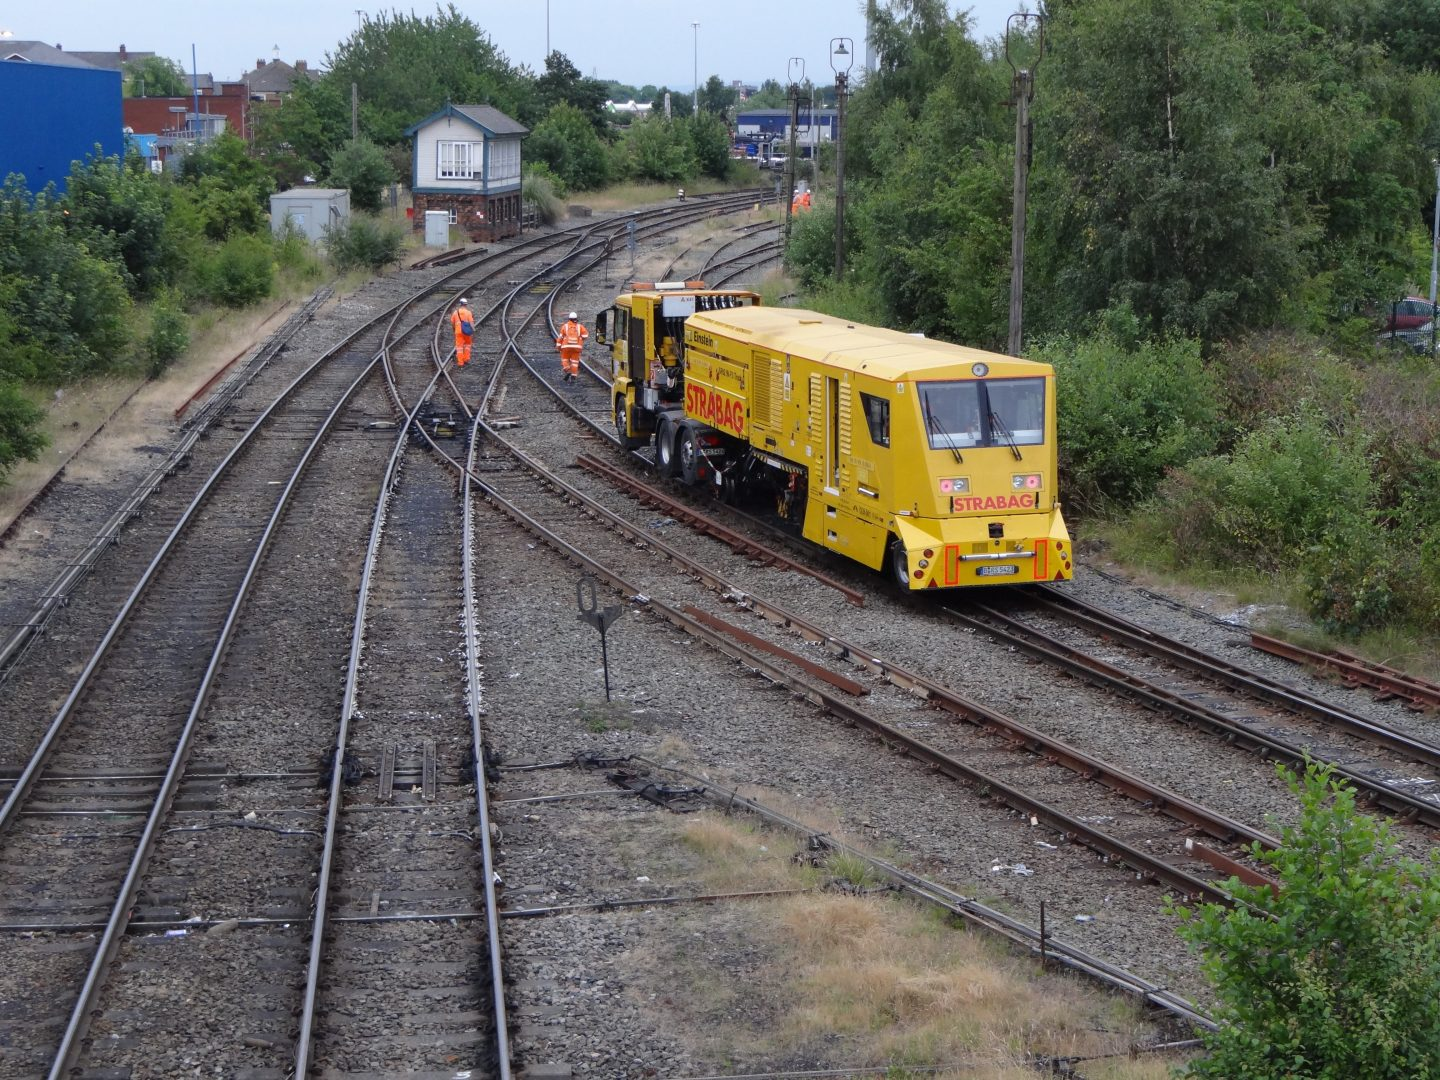 Milling brings a new lease of life to damaged track